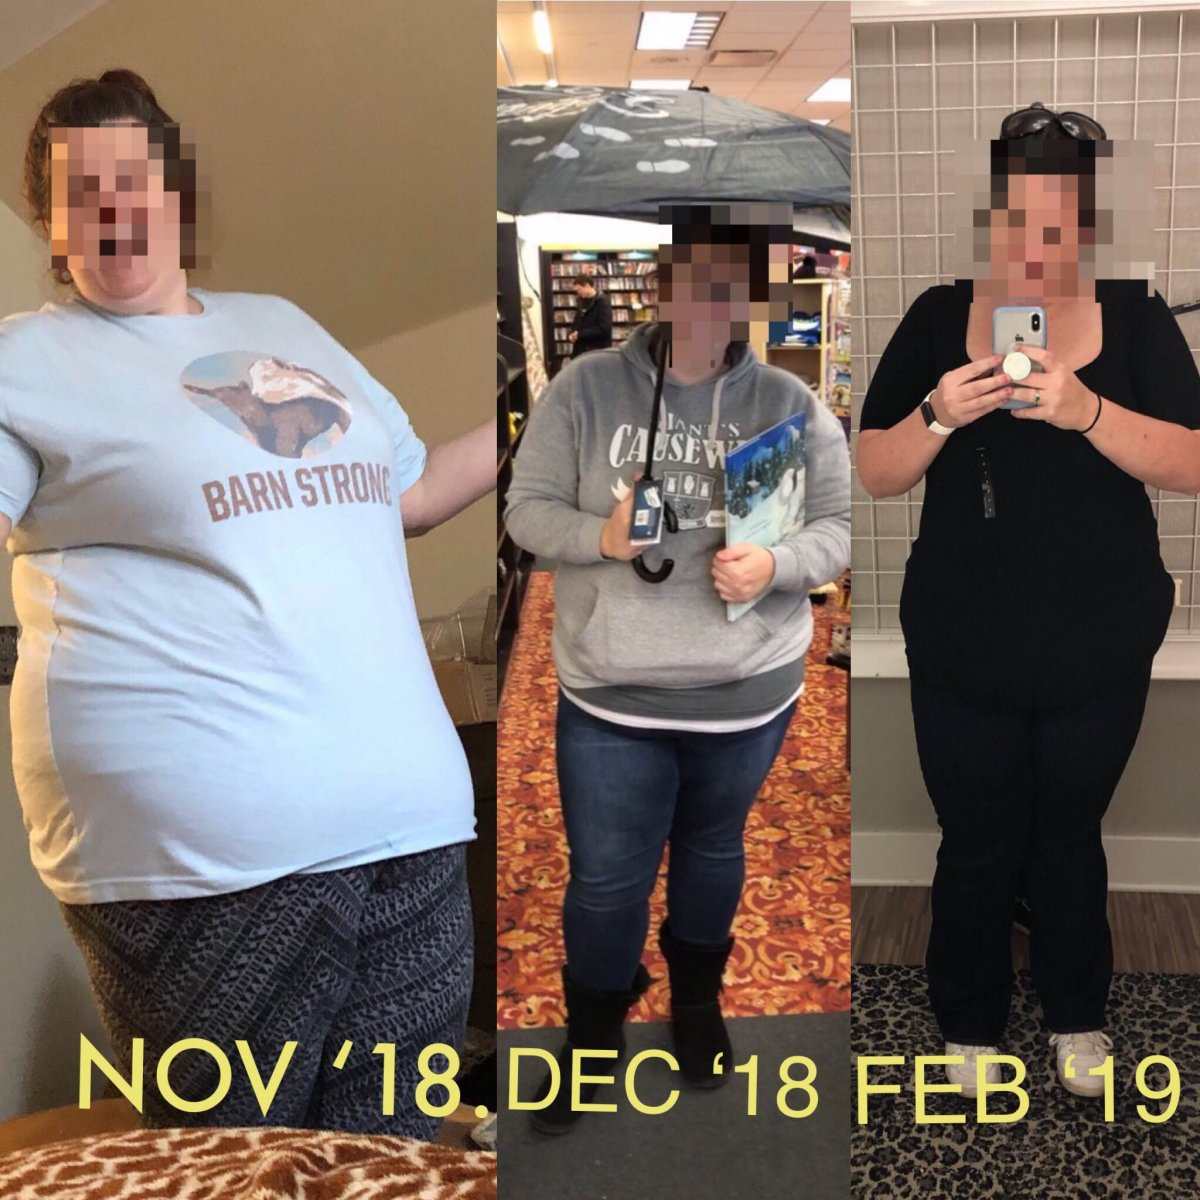 60 pounds down from high weight